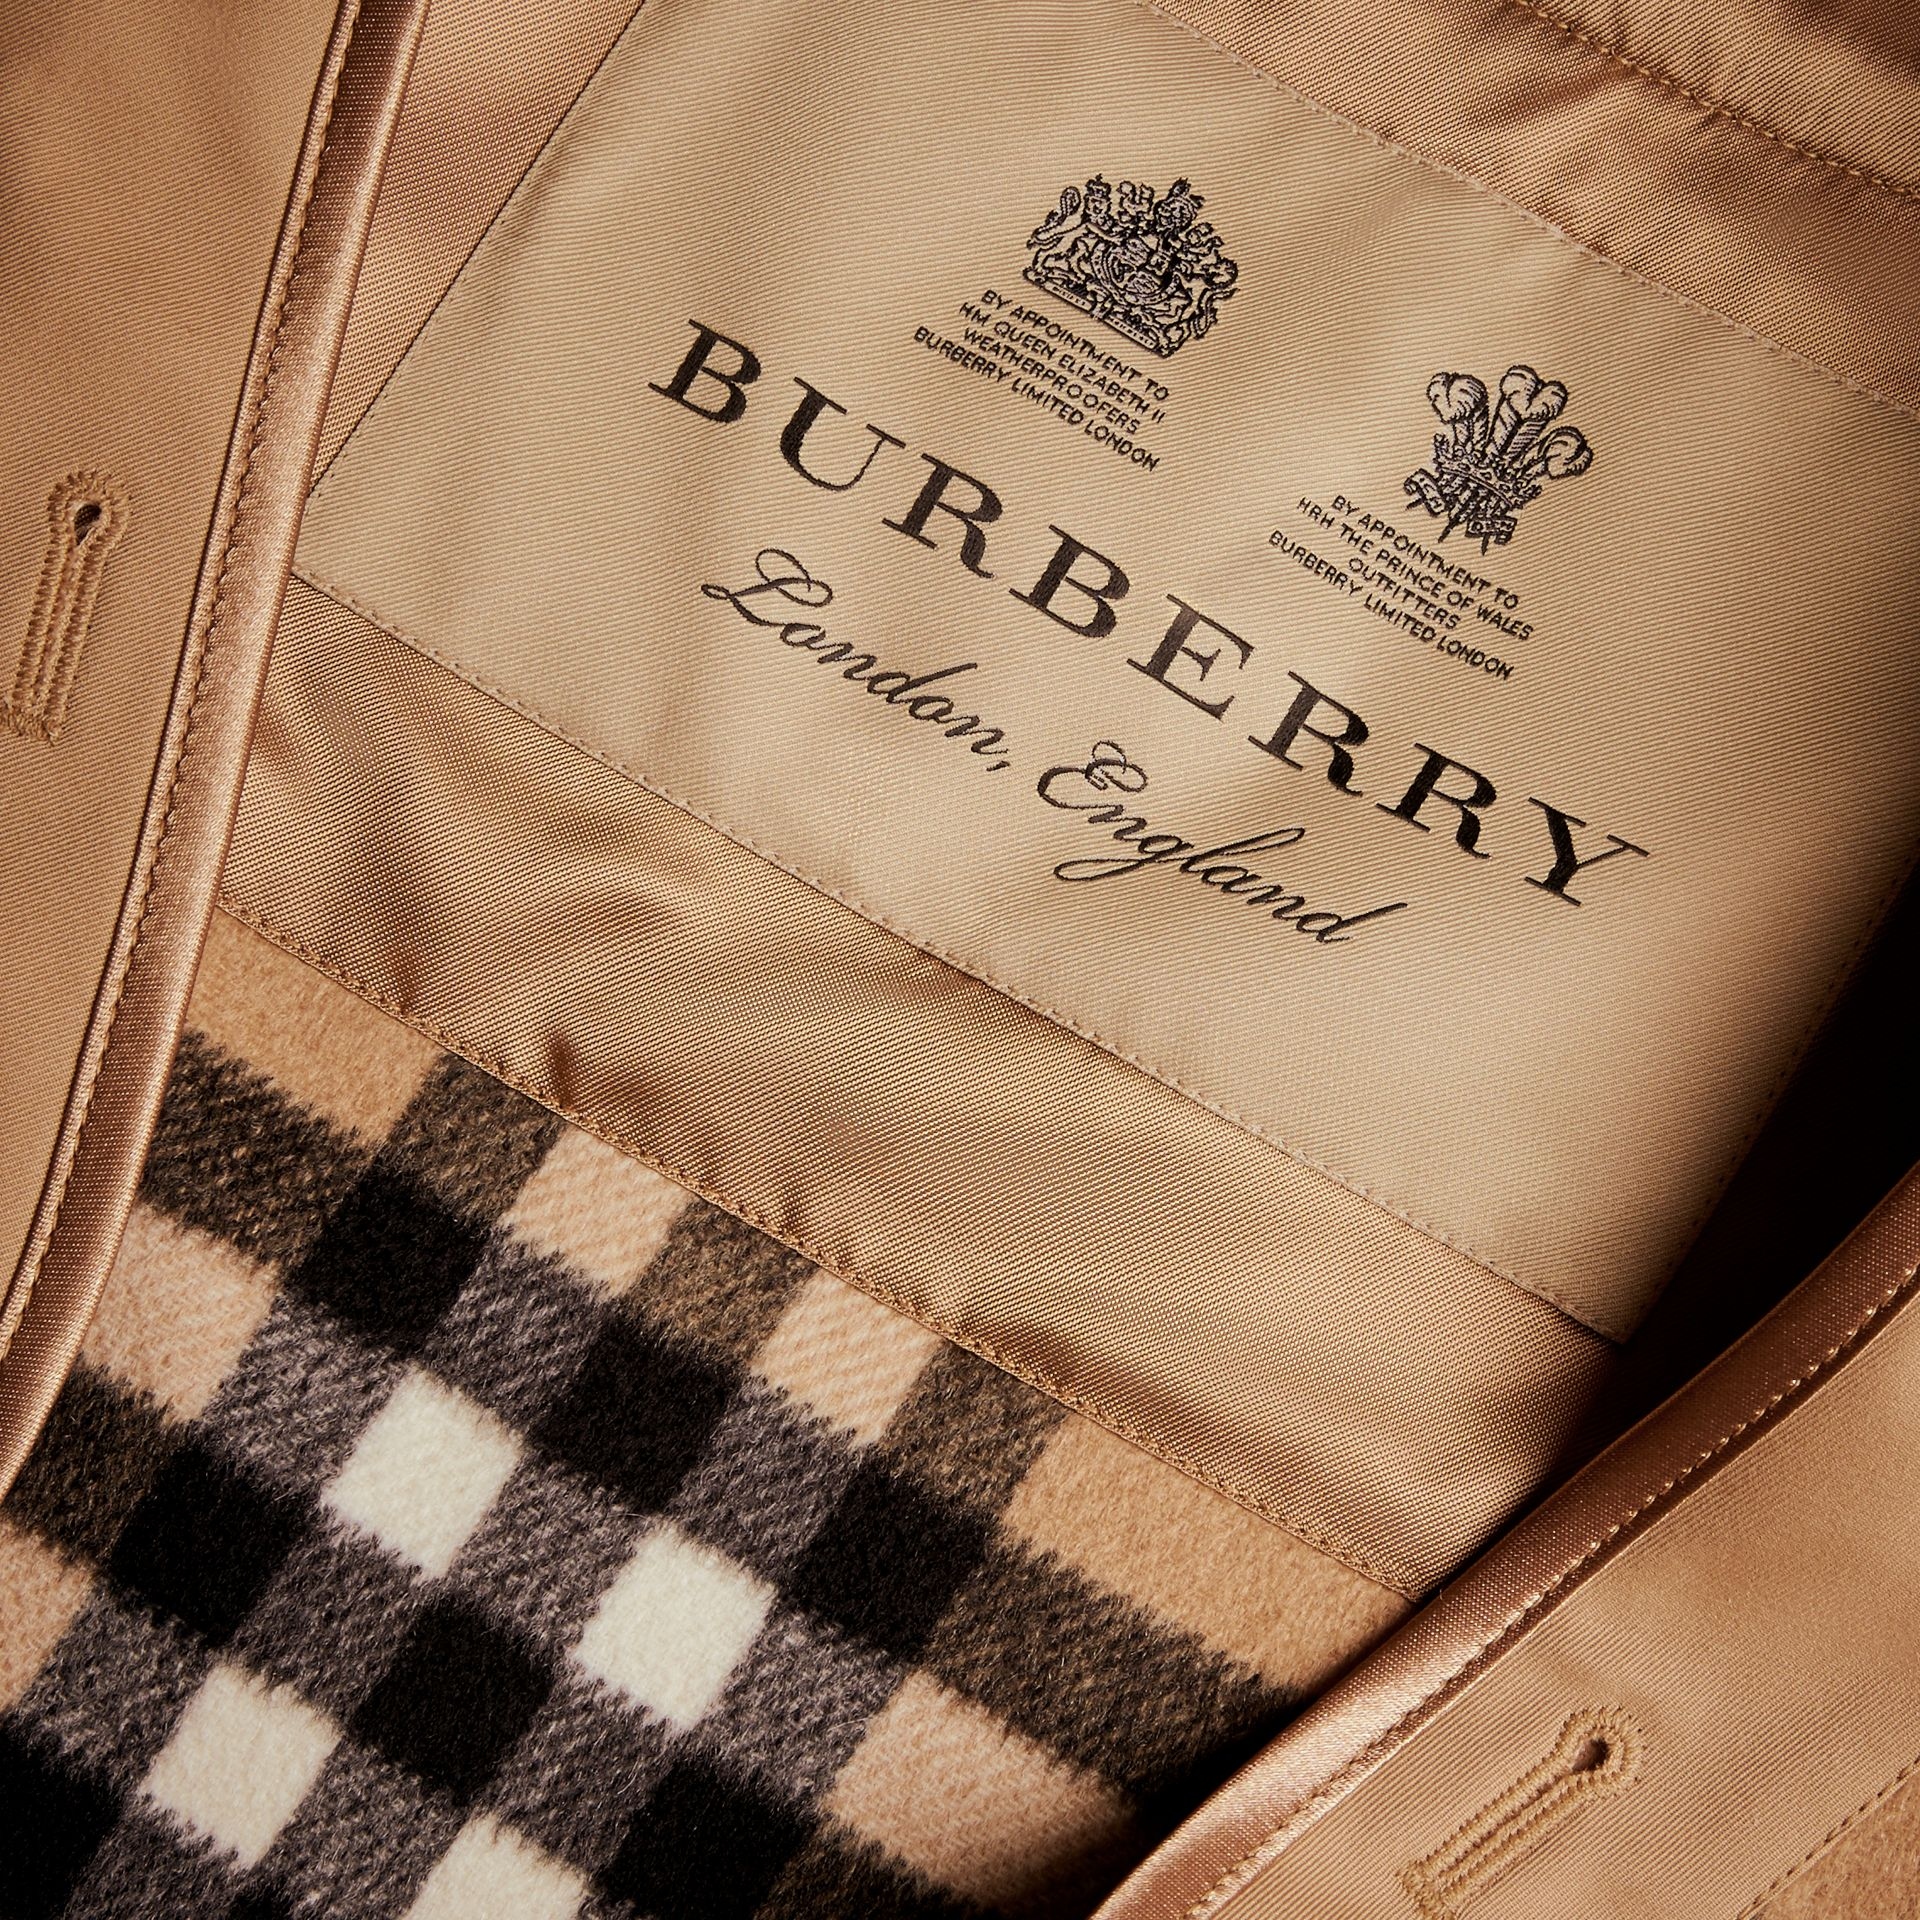 Sandringham-fit House Check Cashmere Wool Warmer in Camel - Men | Burberry - gallery image 1